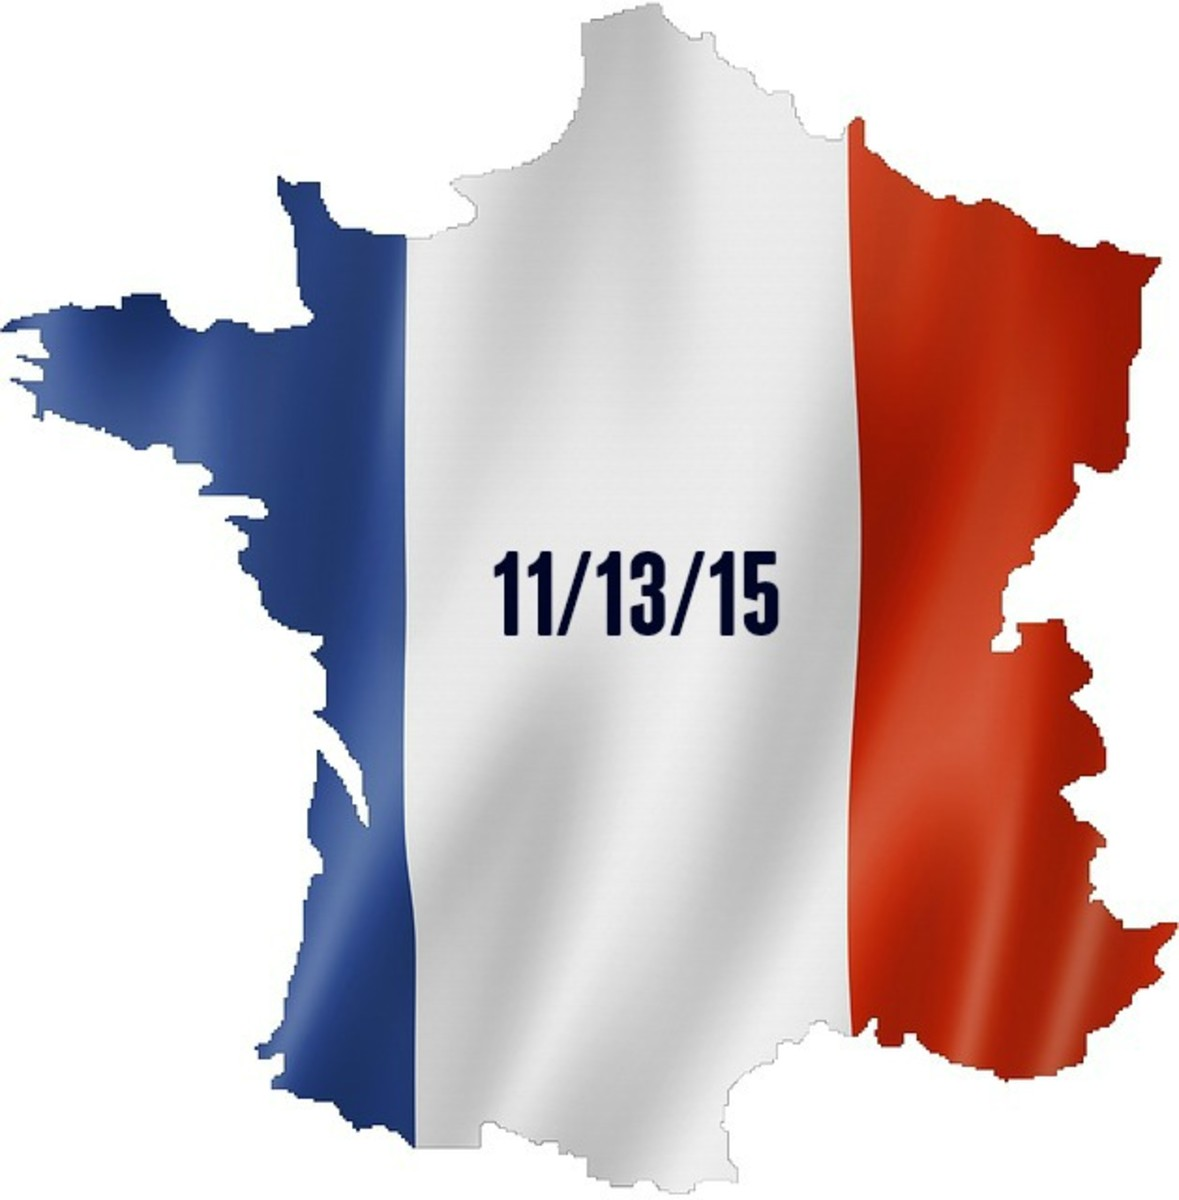 Paris Attacks | Another Act of Violent Terrorism Ends in Random Deaths